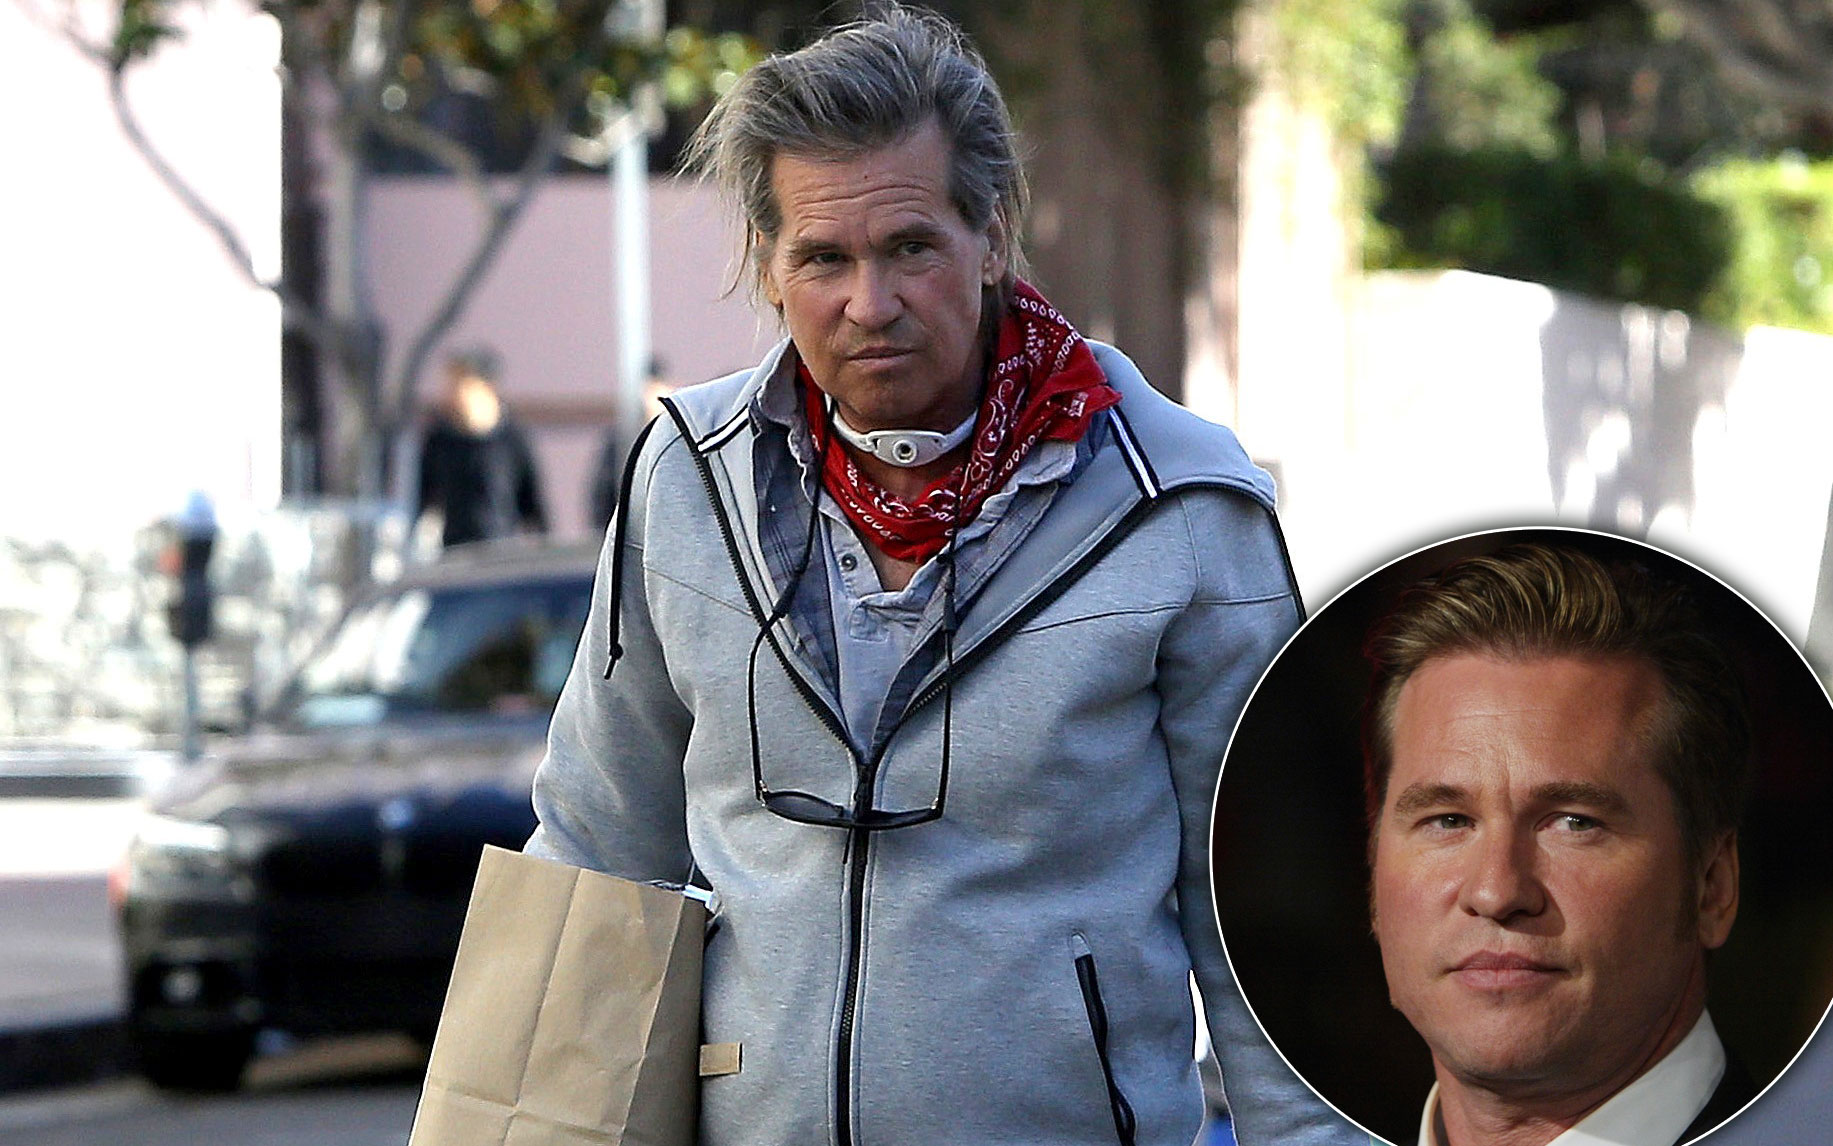 Health Crisis Val Kilmer Spotted With Tracheostomy Tube After